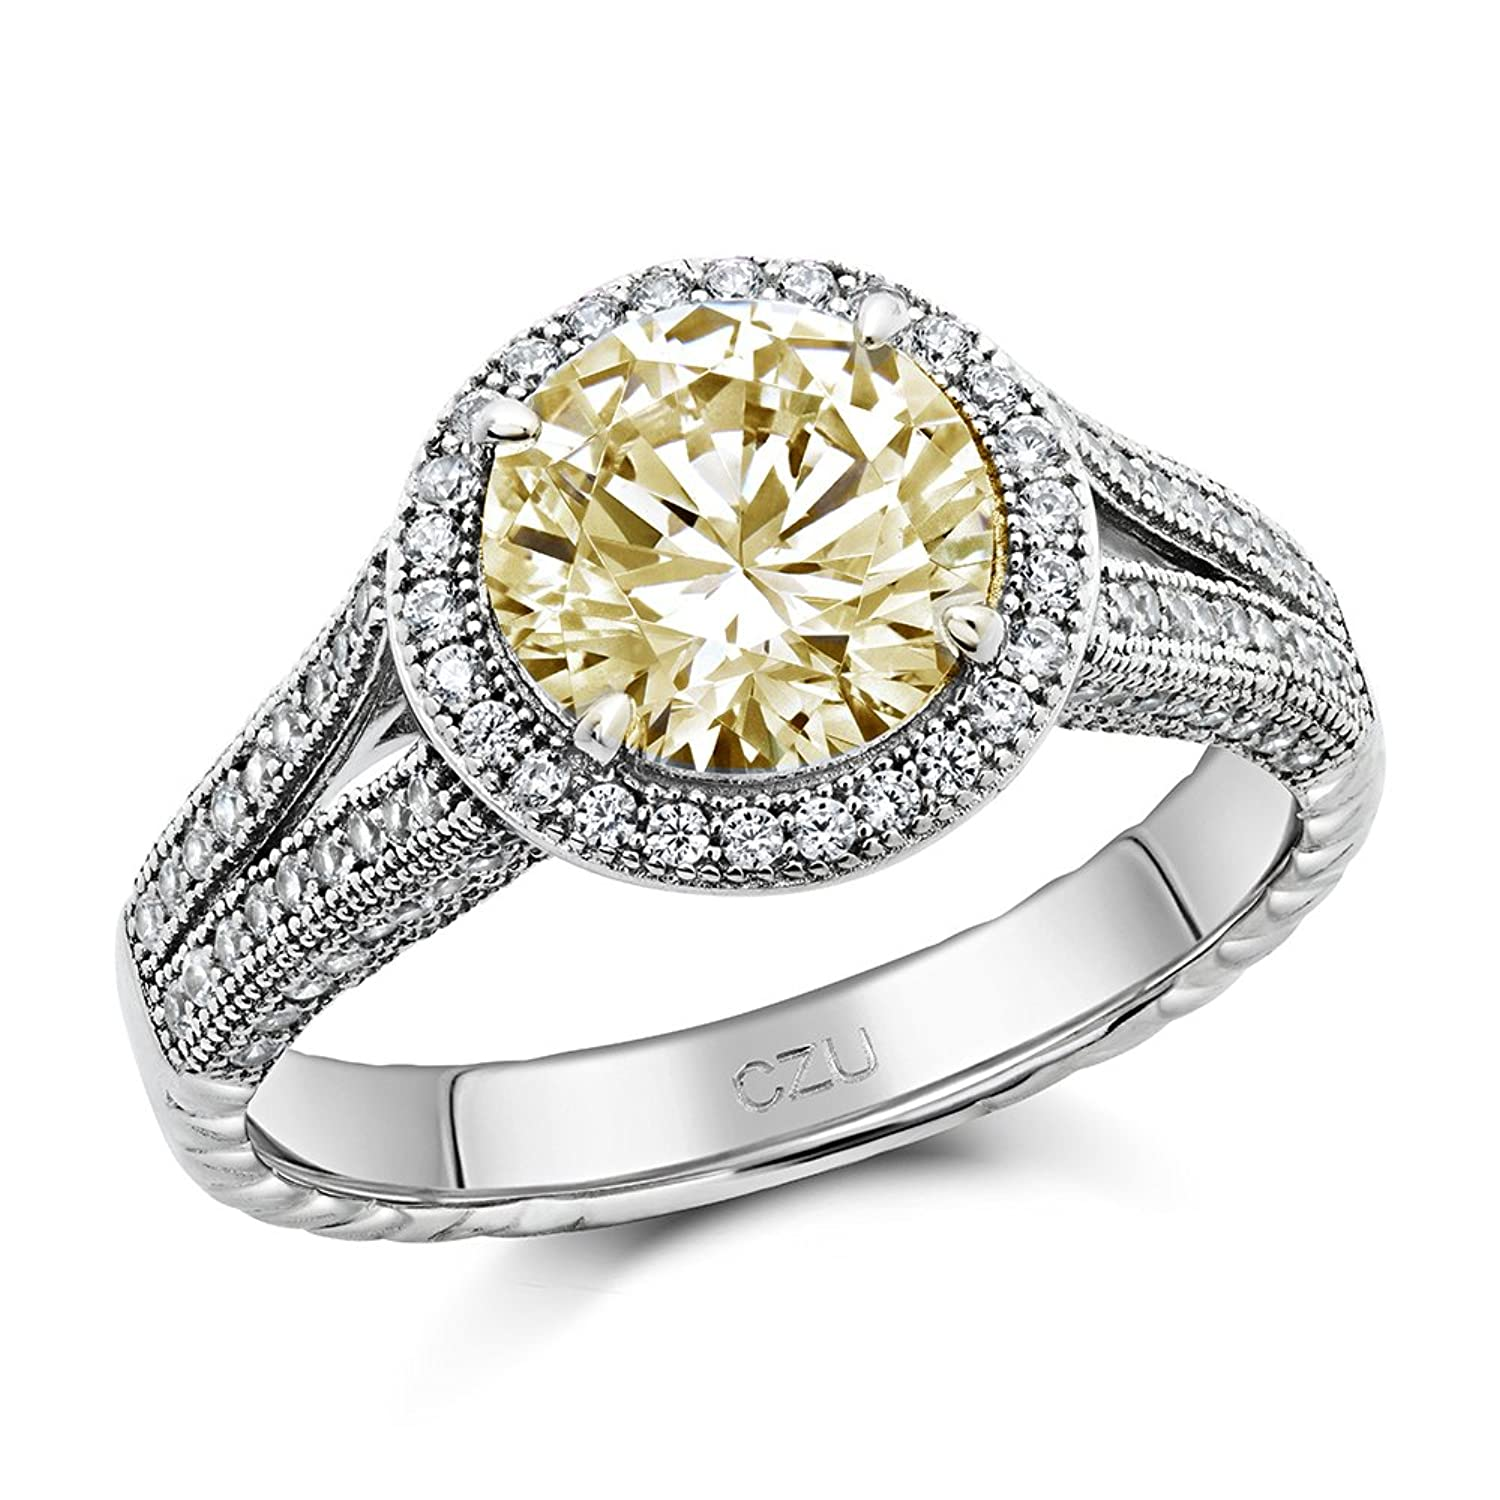 Canary Yellow Round Cut Cubic Zirconia Engagement Ring Sterling Silver